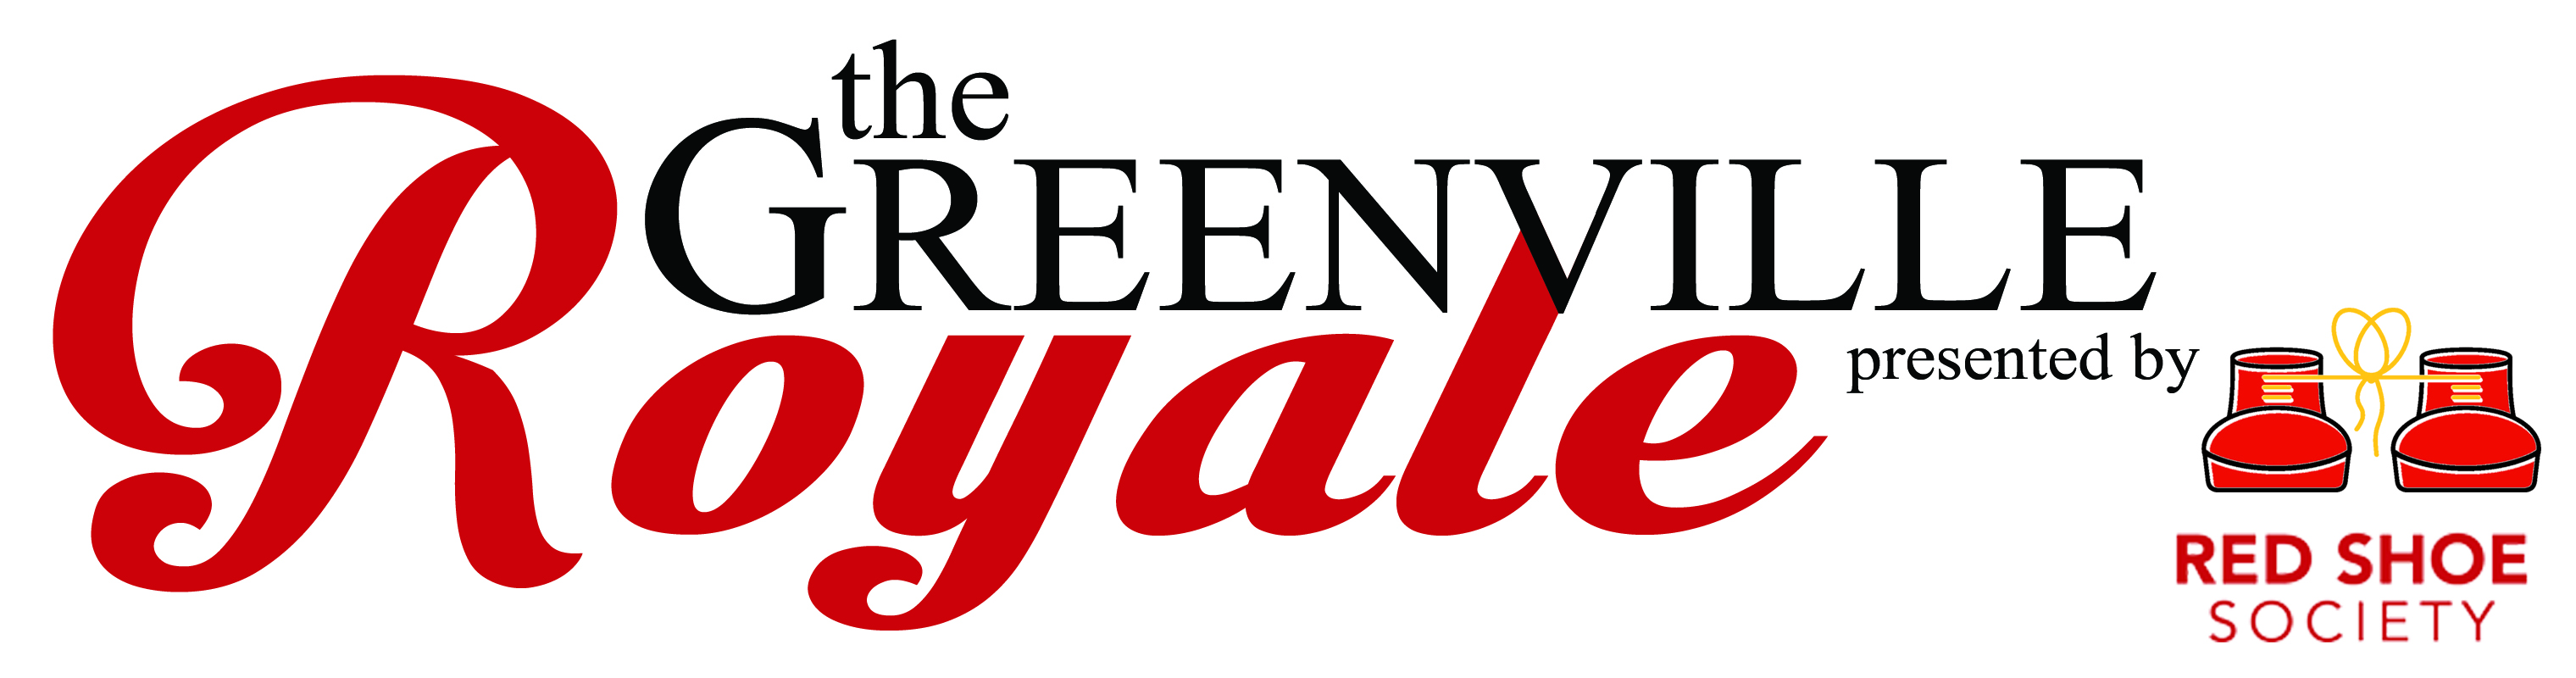 RSS Greenville Royale